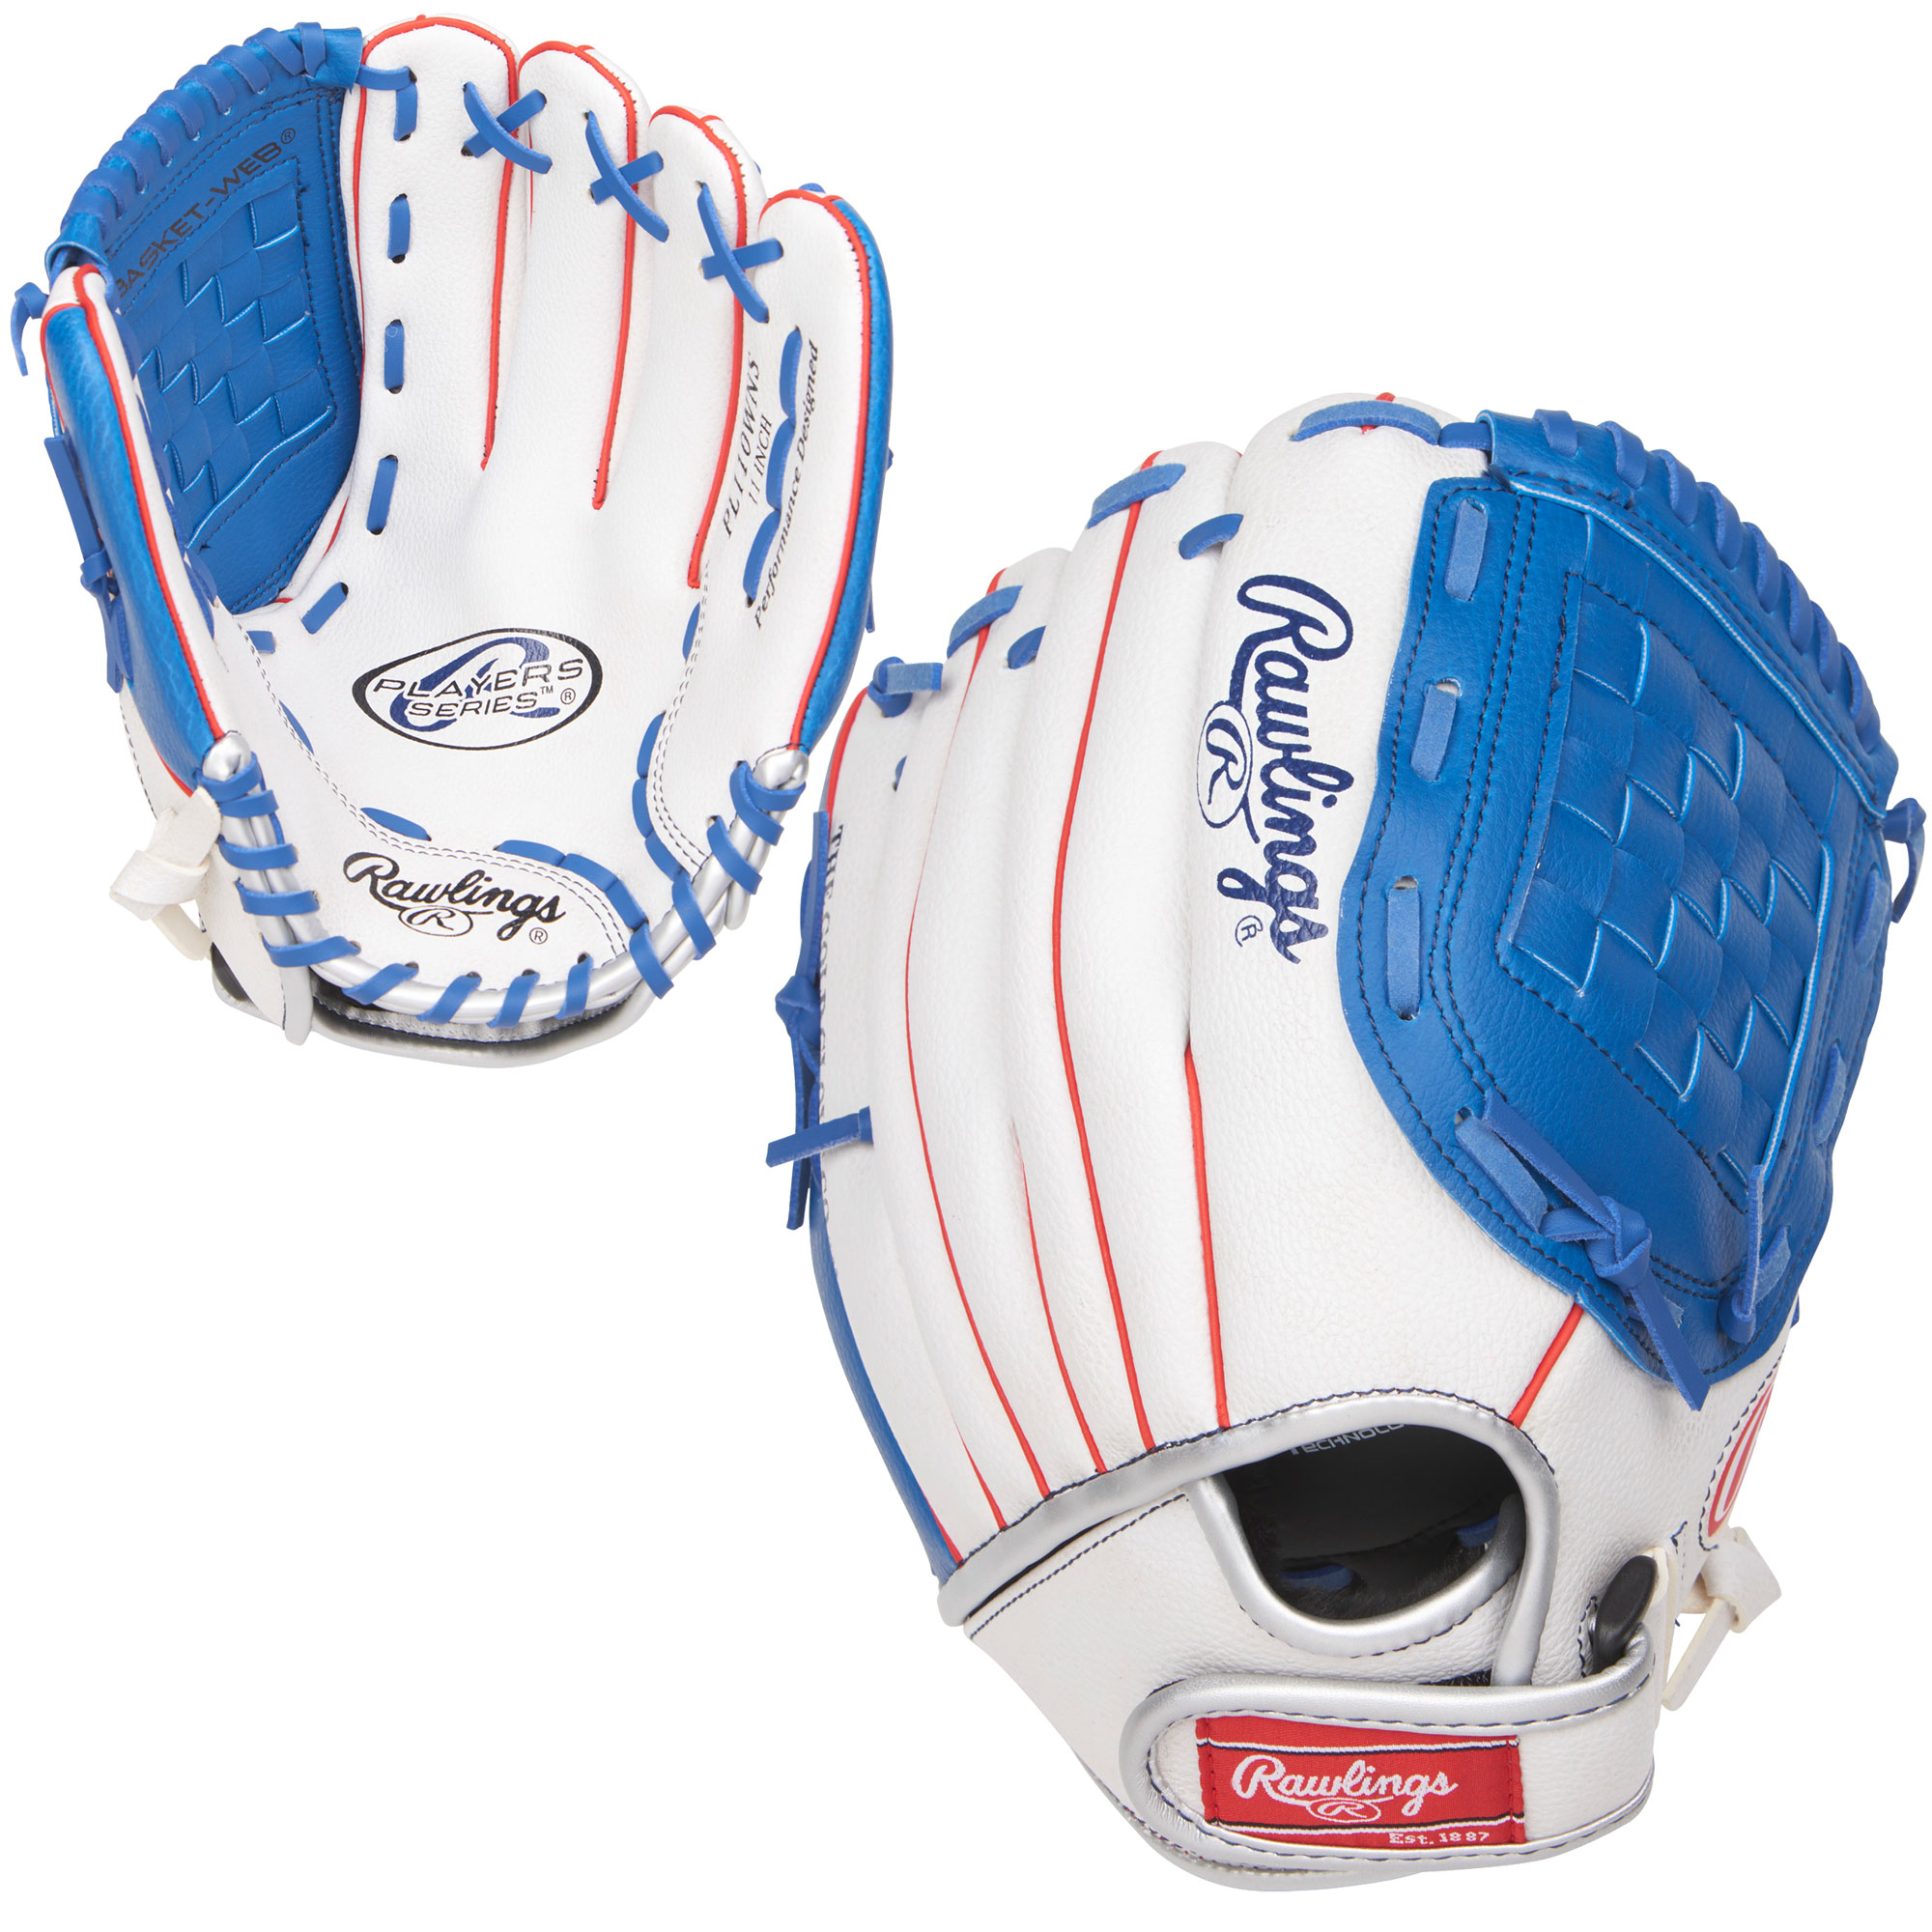 "Rawlings 11"" Players Series Baseball Glove"